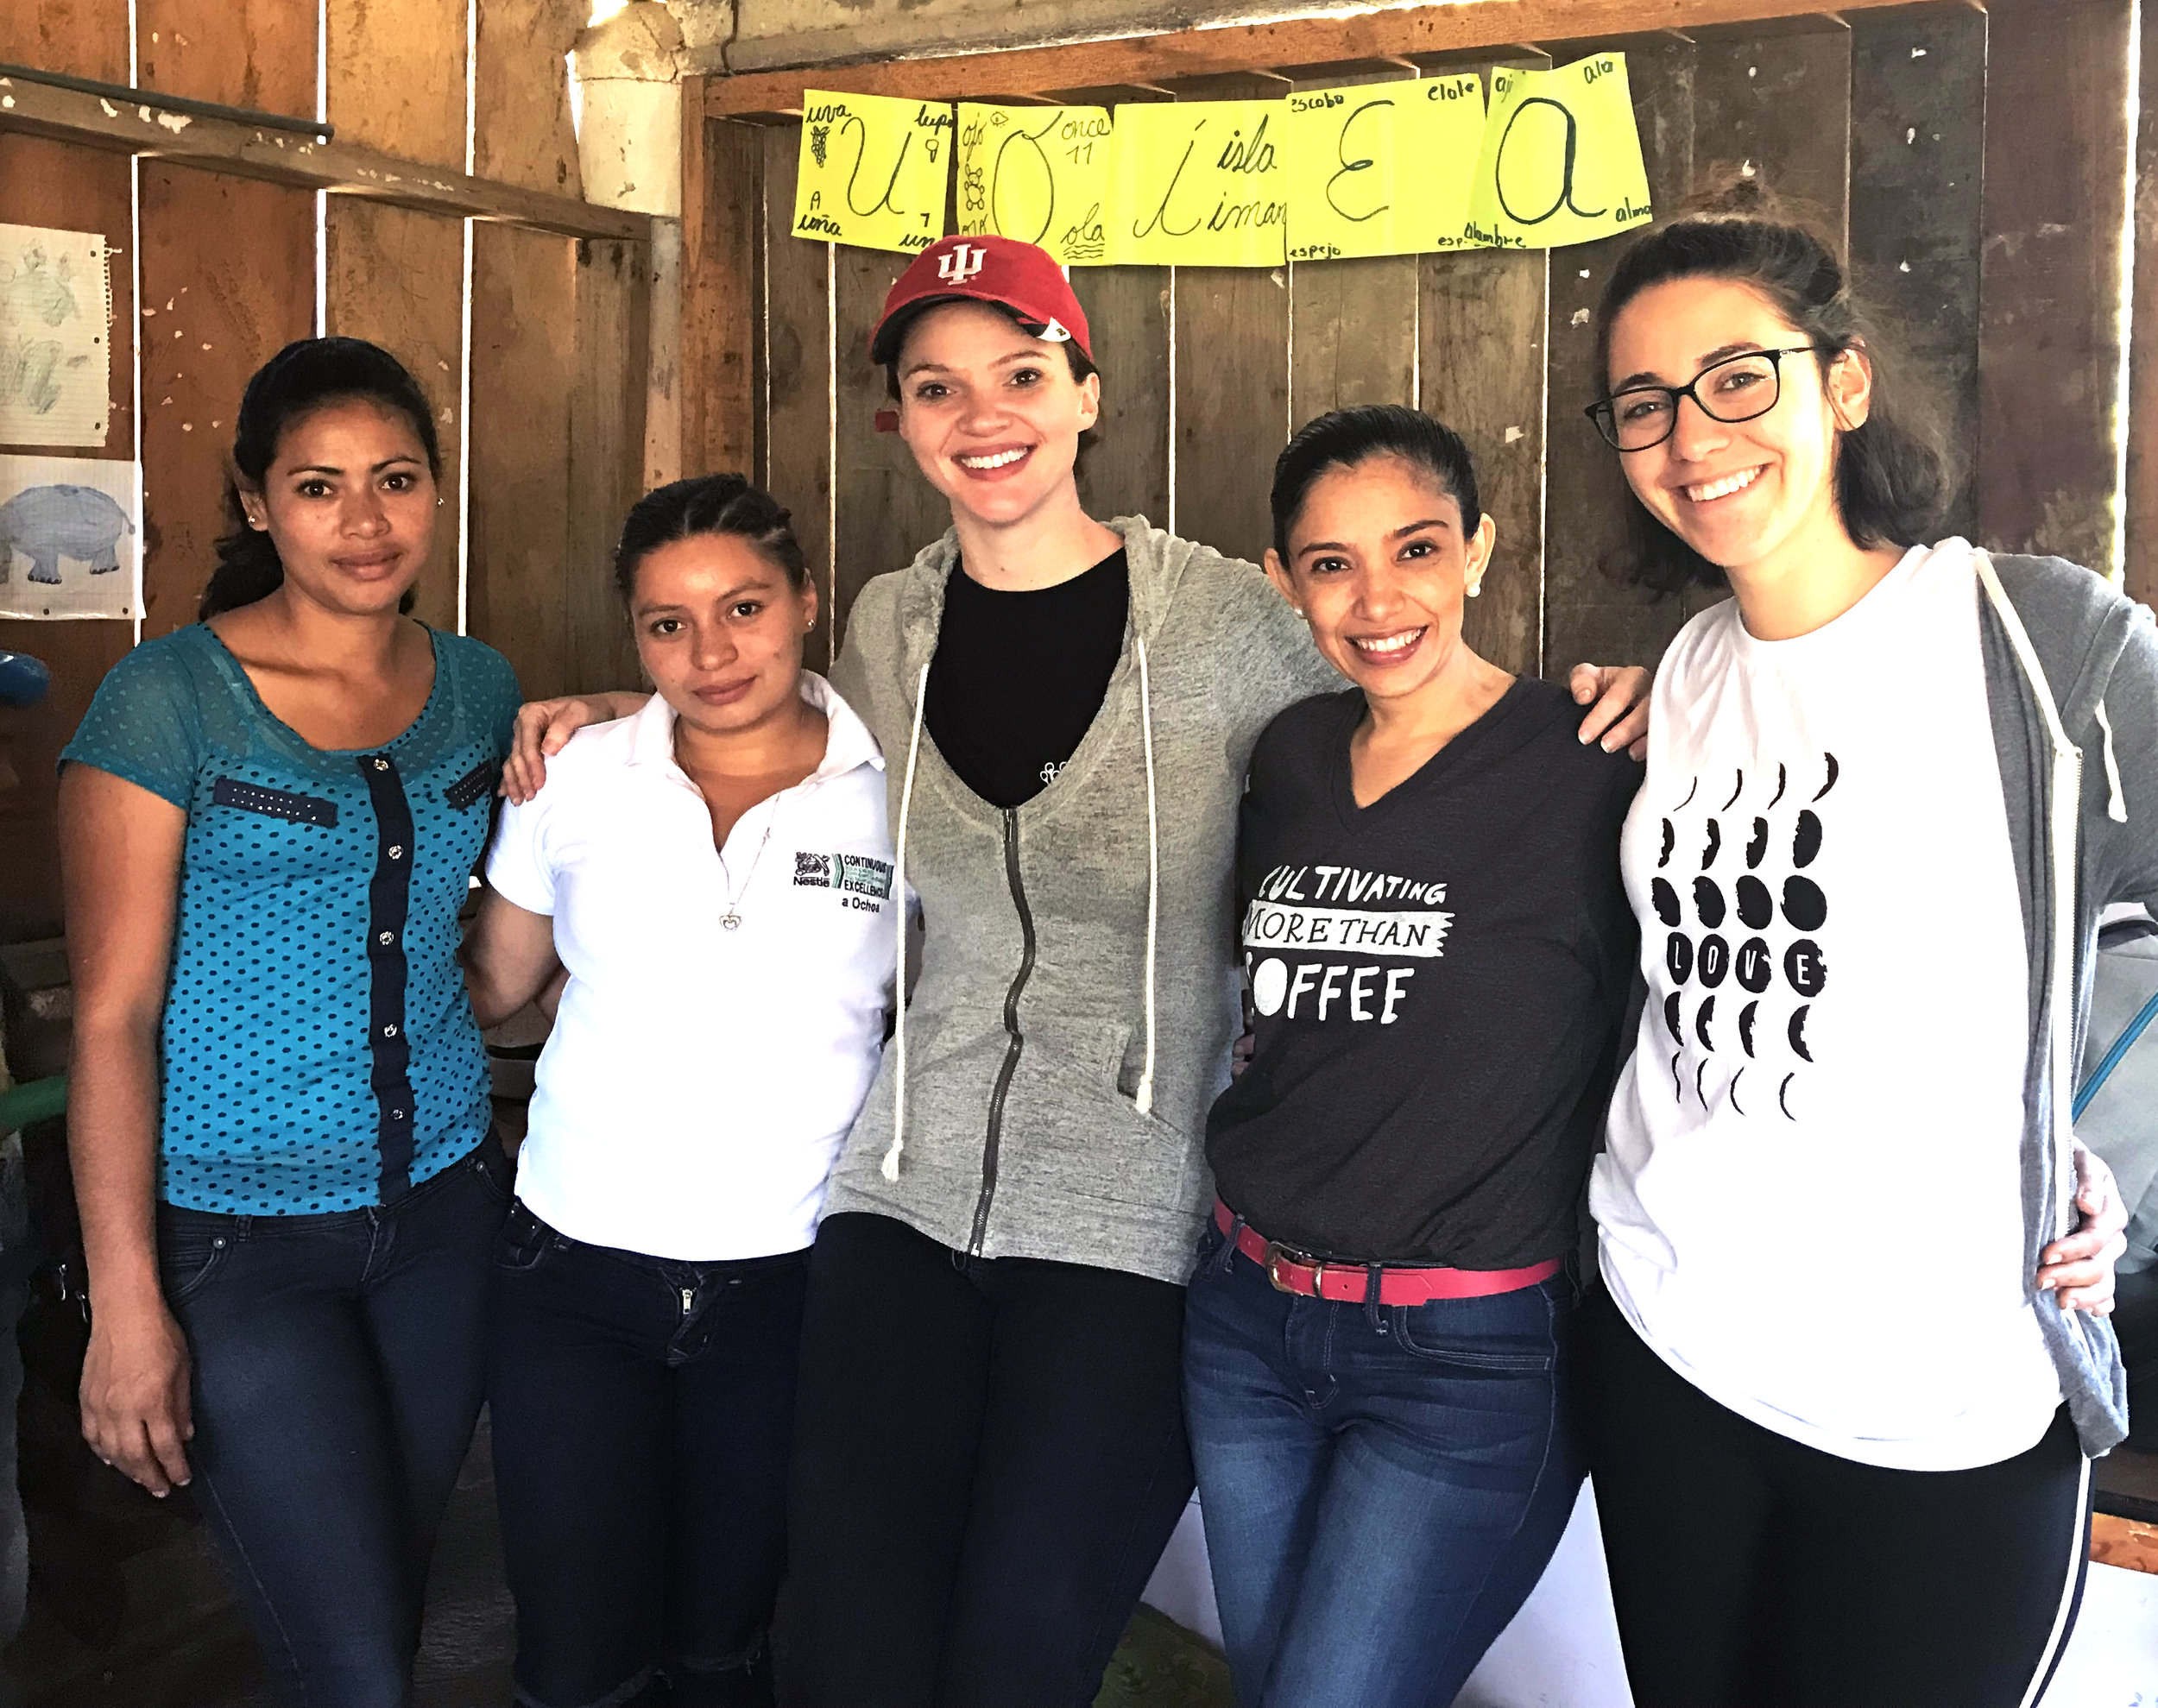 Facilitator Blanca Guido, Head Teacher Elizabeth Perez, CEO Kristin Van Busum, Country Director Amalia Castellanos, and Princeton Fellow Camila De La Vega have all been instrumental in implementing the eLearning program.